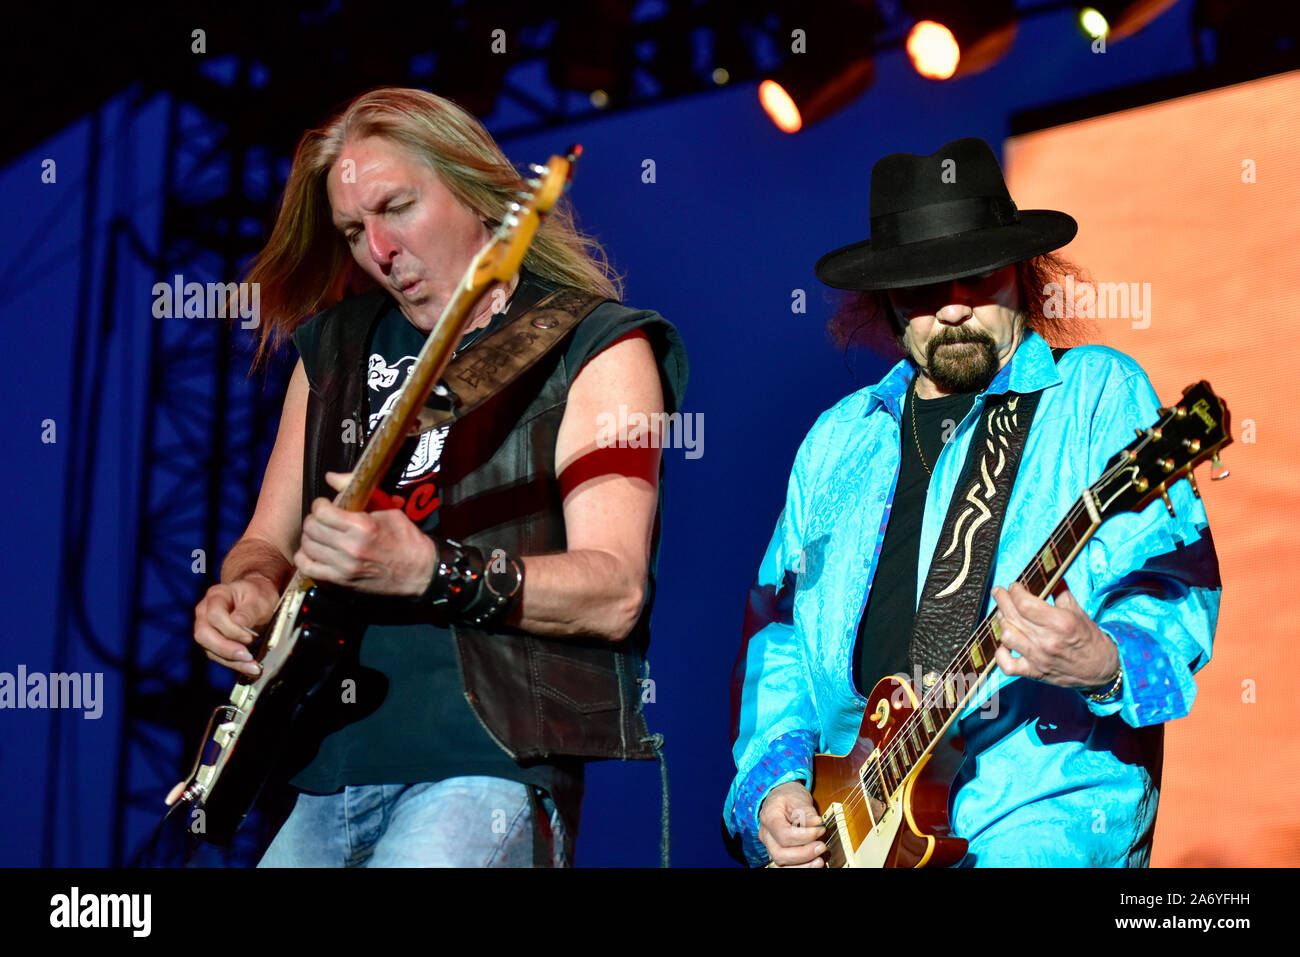 Gary Rossington of Lynyrd Skynyrd on stage at the Stagecoach Festival in Indio, California. Stock Photo